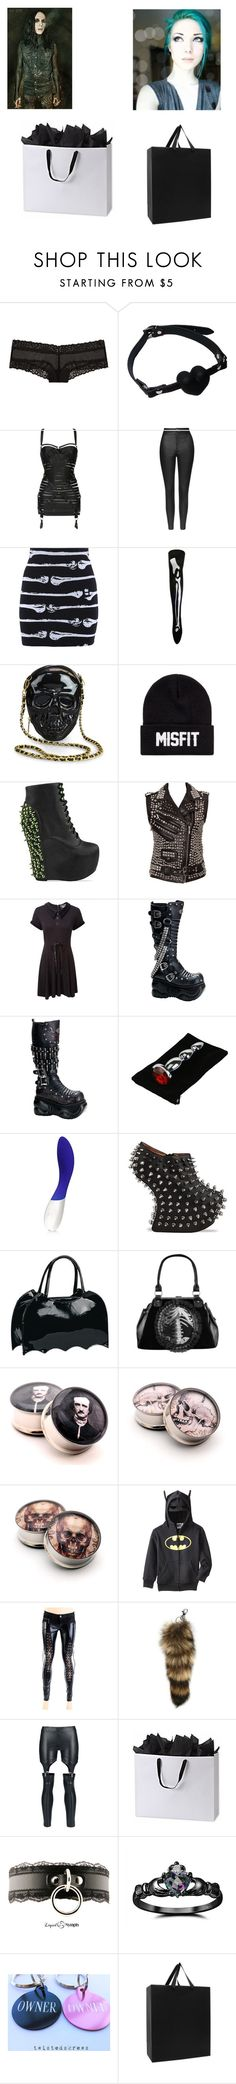 """""""look what i got you- Ricky"""" by ravenxsykessola ❤ liked on Polyvore featuring Intimissimi, Victoria's Secret, Bordelle, Atsuko Kudo, Topshop, Iron Fist, Loungefly, SSUR, Jeffrey Campbell and Kill Star"""